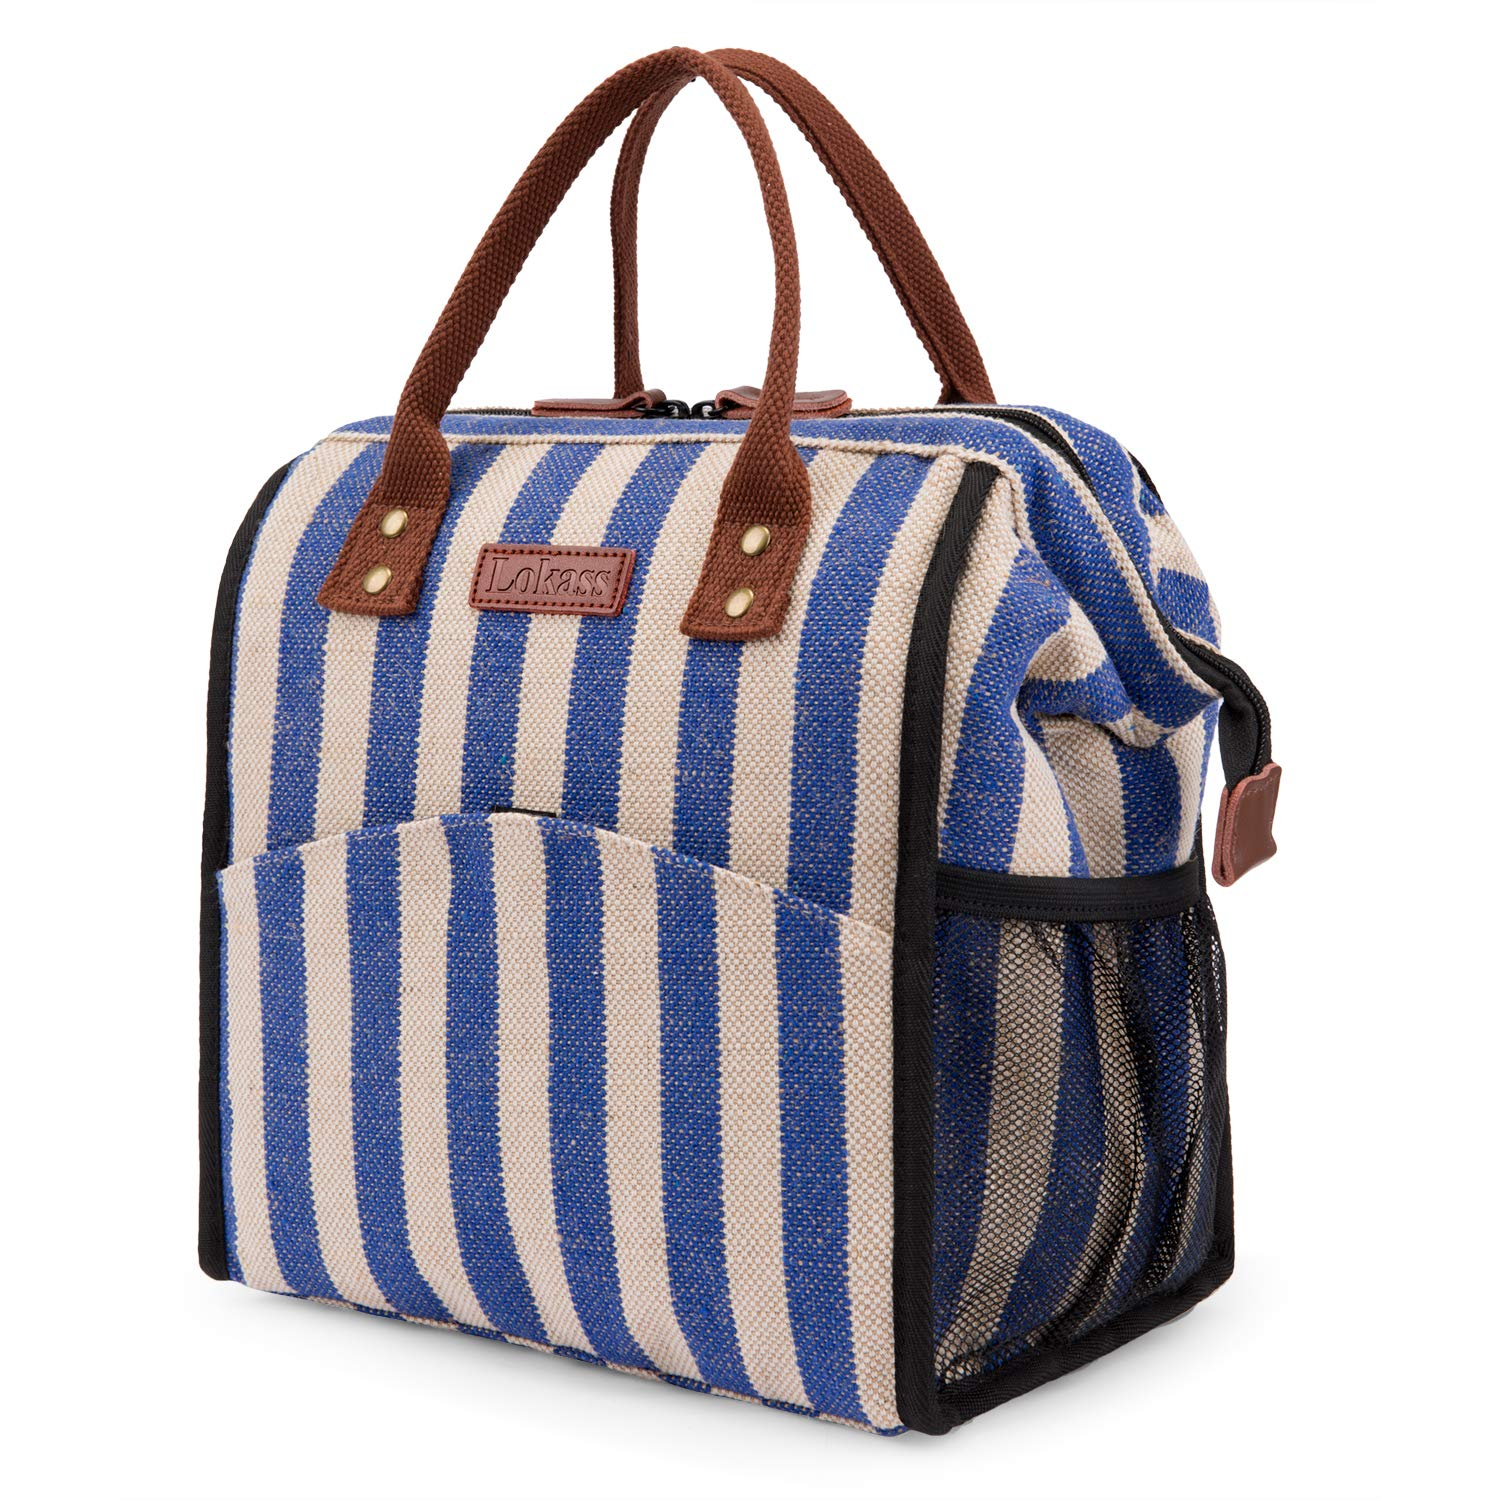 LOKASS Lunch Bag Cooler Bag Women Tote Bag Insulated Lunch Box Water-resistant Thermal Lunch Bag Soft Water-resistant Lunch Bags with wide-open for women (Stripe)